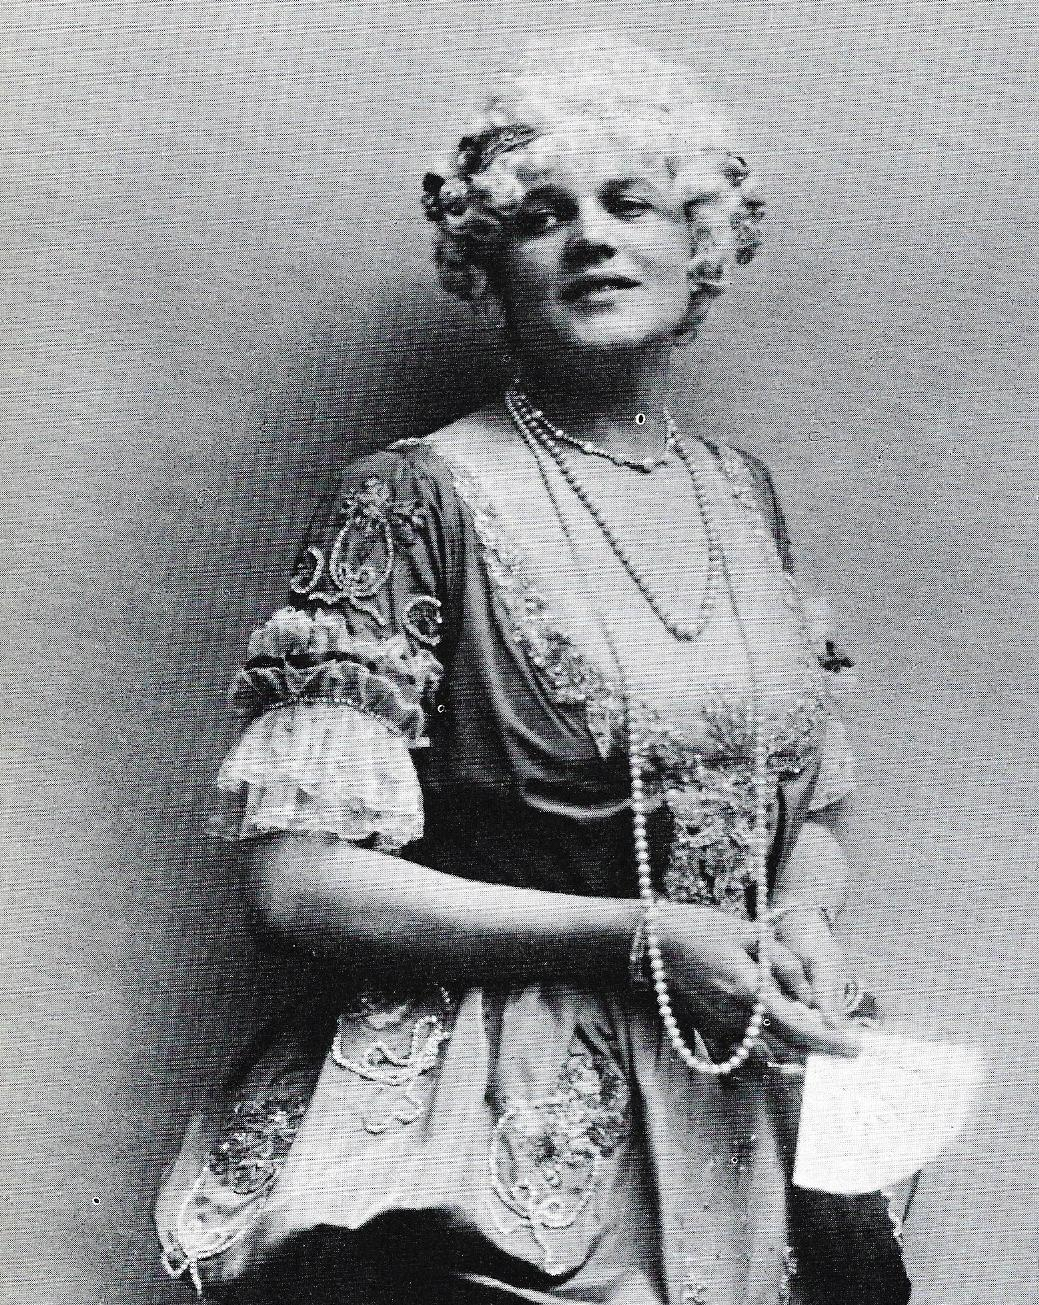 The great Maria Jeritza as Puccini's Manon Lescaut, from  The Vienna Opera  by Marcel Prawy